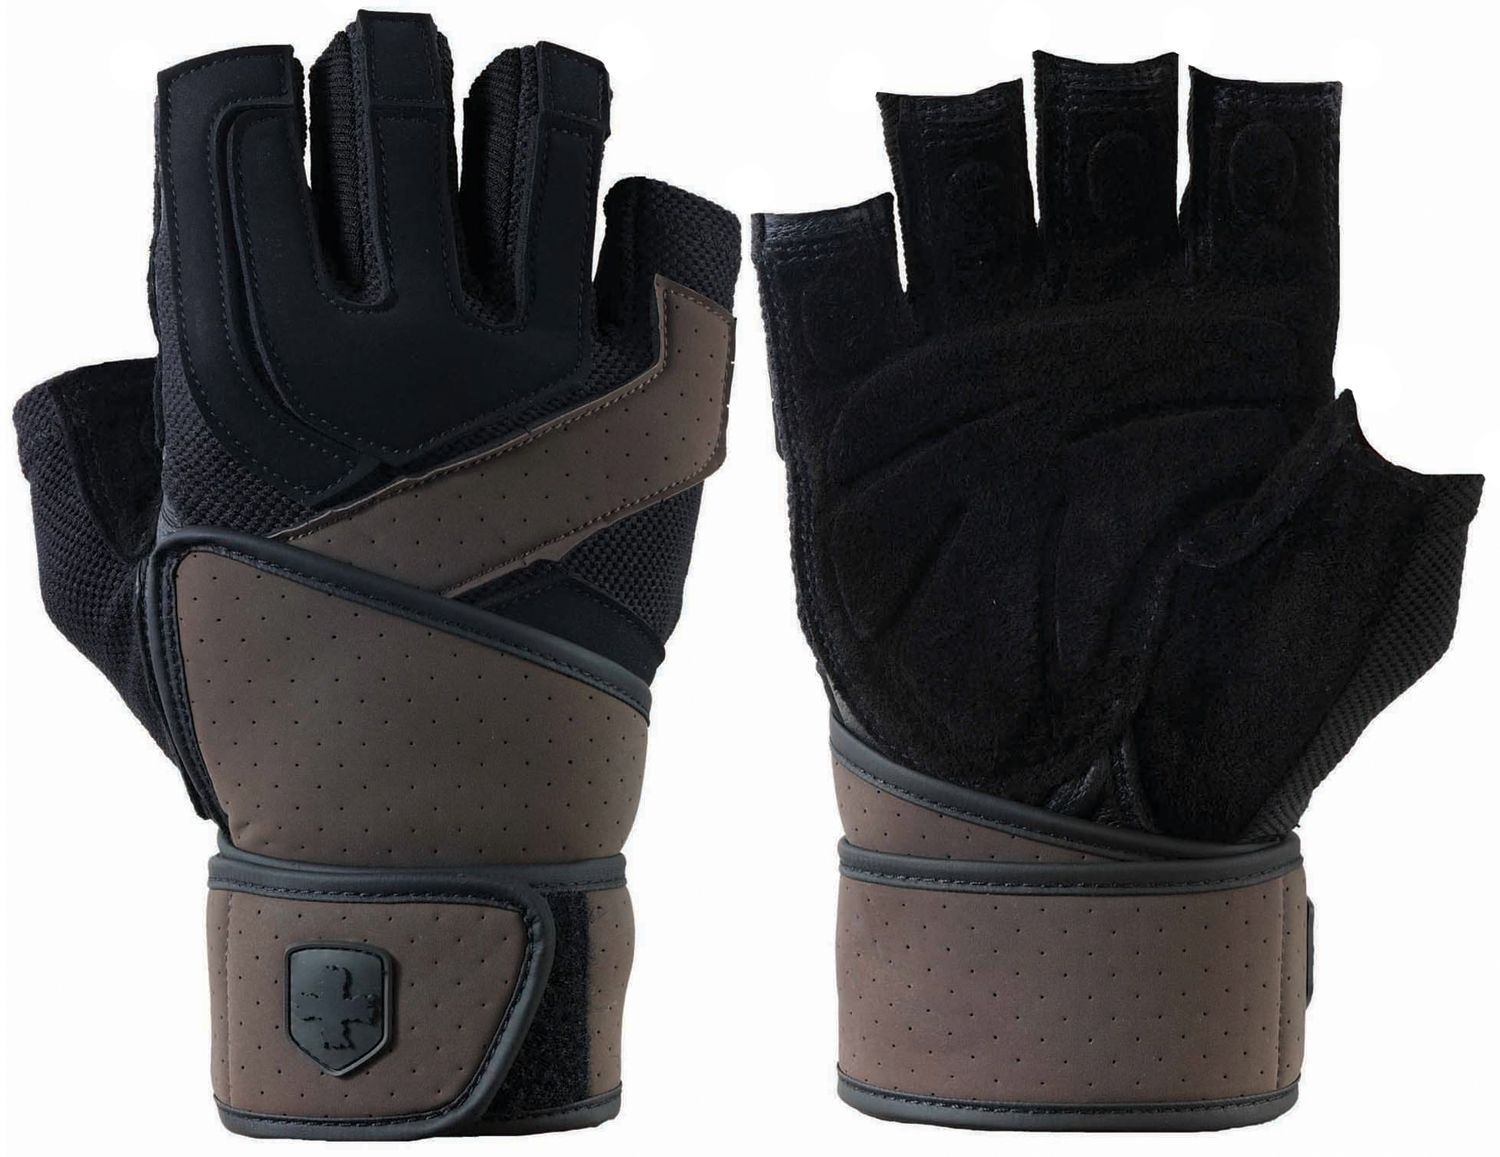 Harbinger Training Grip Wrist Wrap Glove, Black Workout